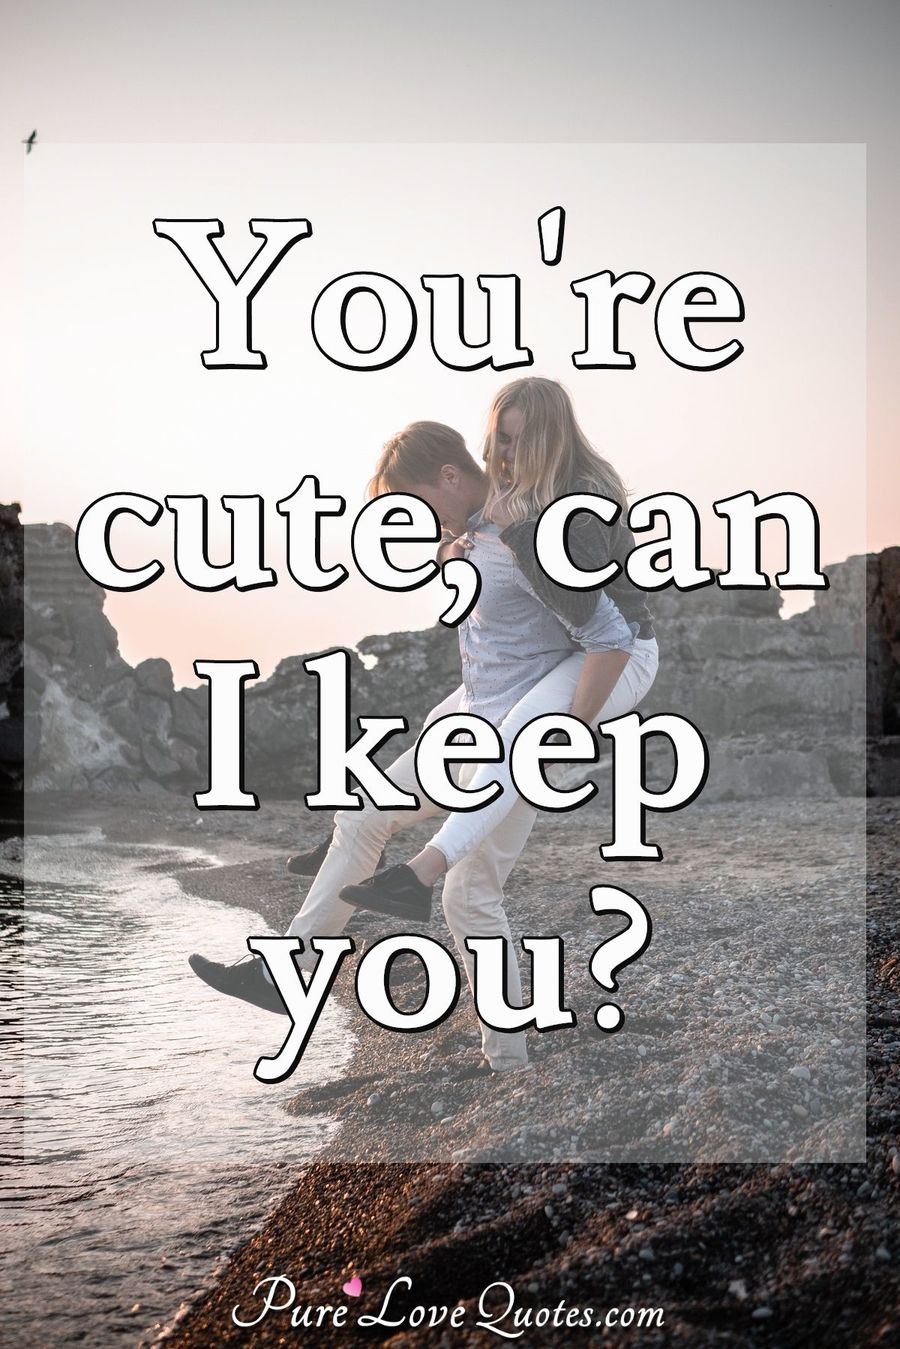 Cute quotes so Top 3